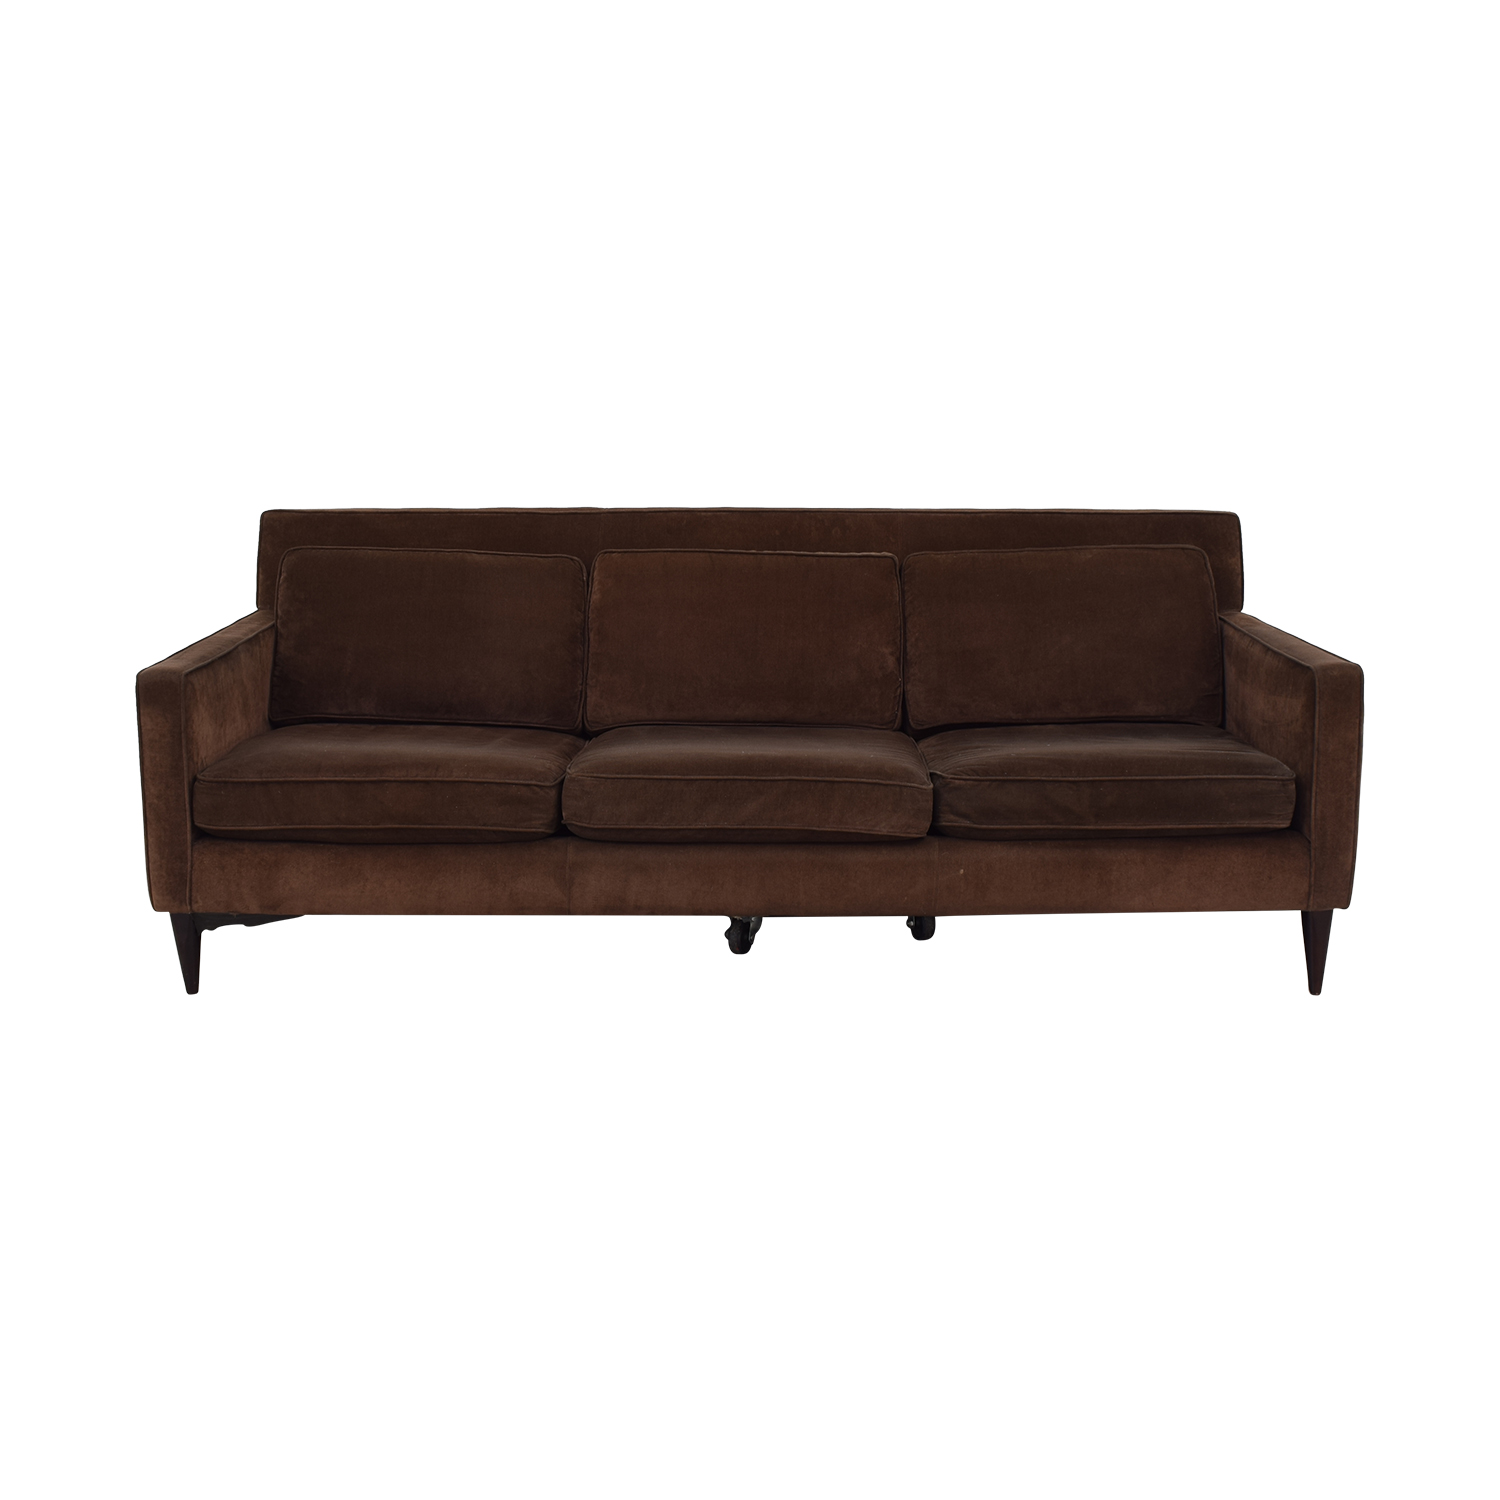 Crate & Barrel Crate & Barrel Rochelle Mid Century Modern  Sofa price